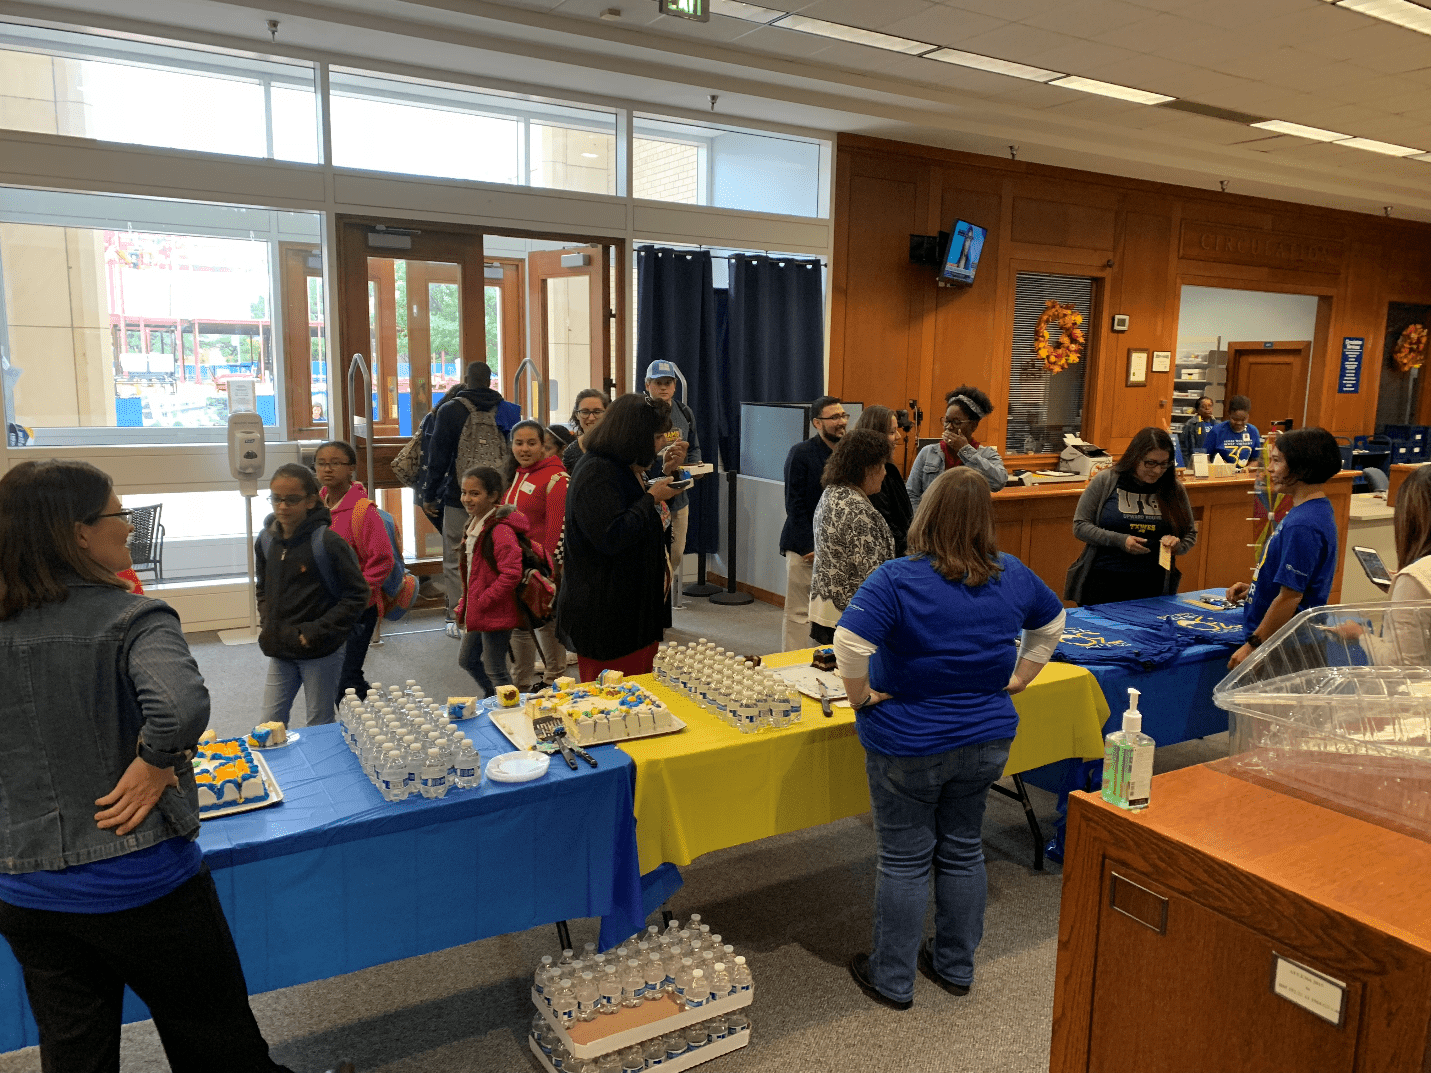 West Library turns 30 with cake and T-shirts